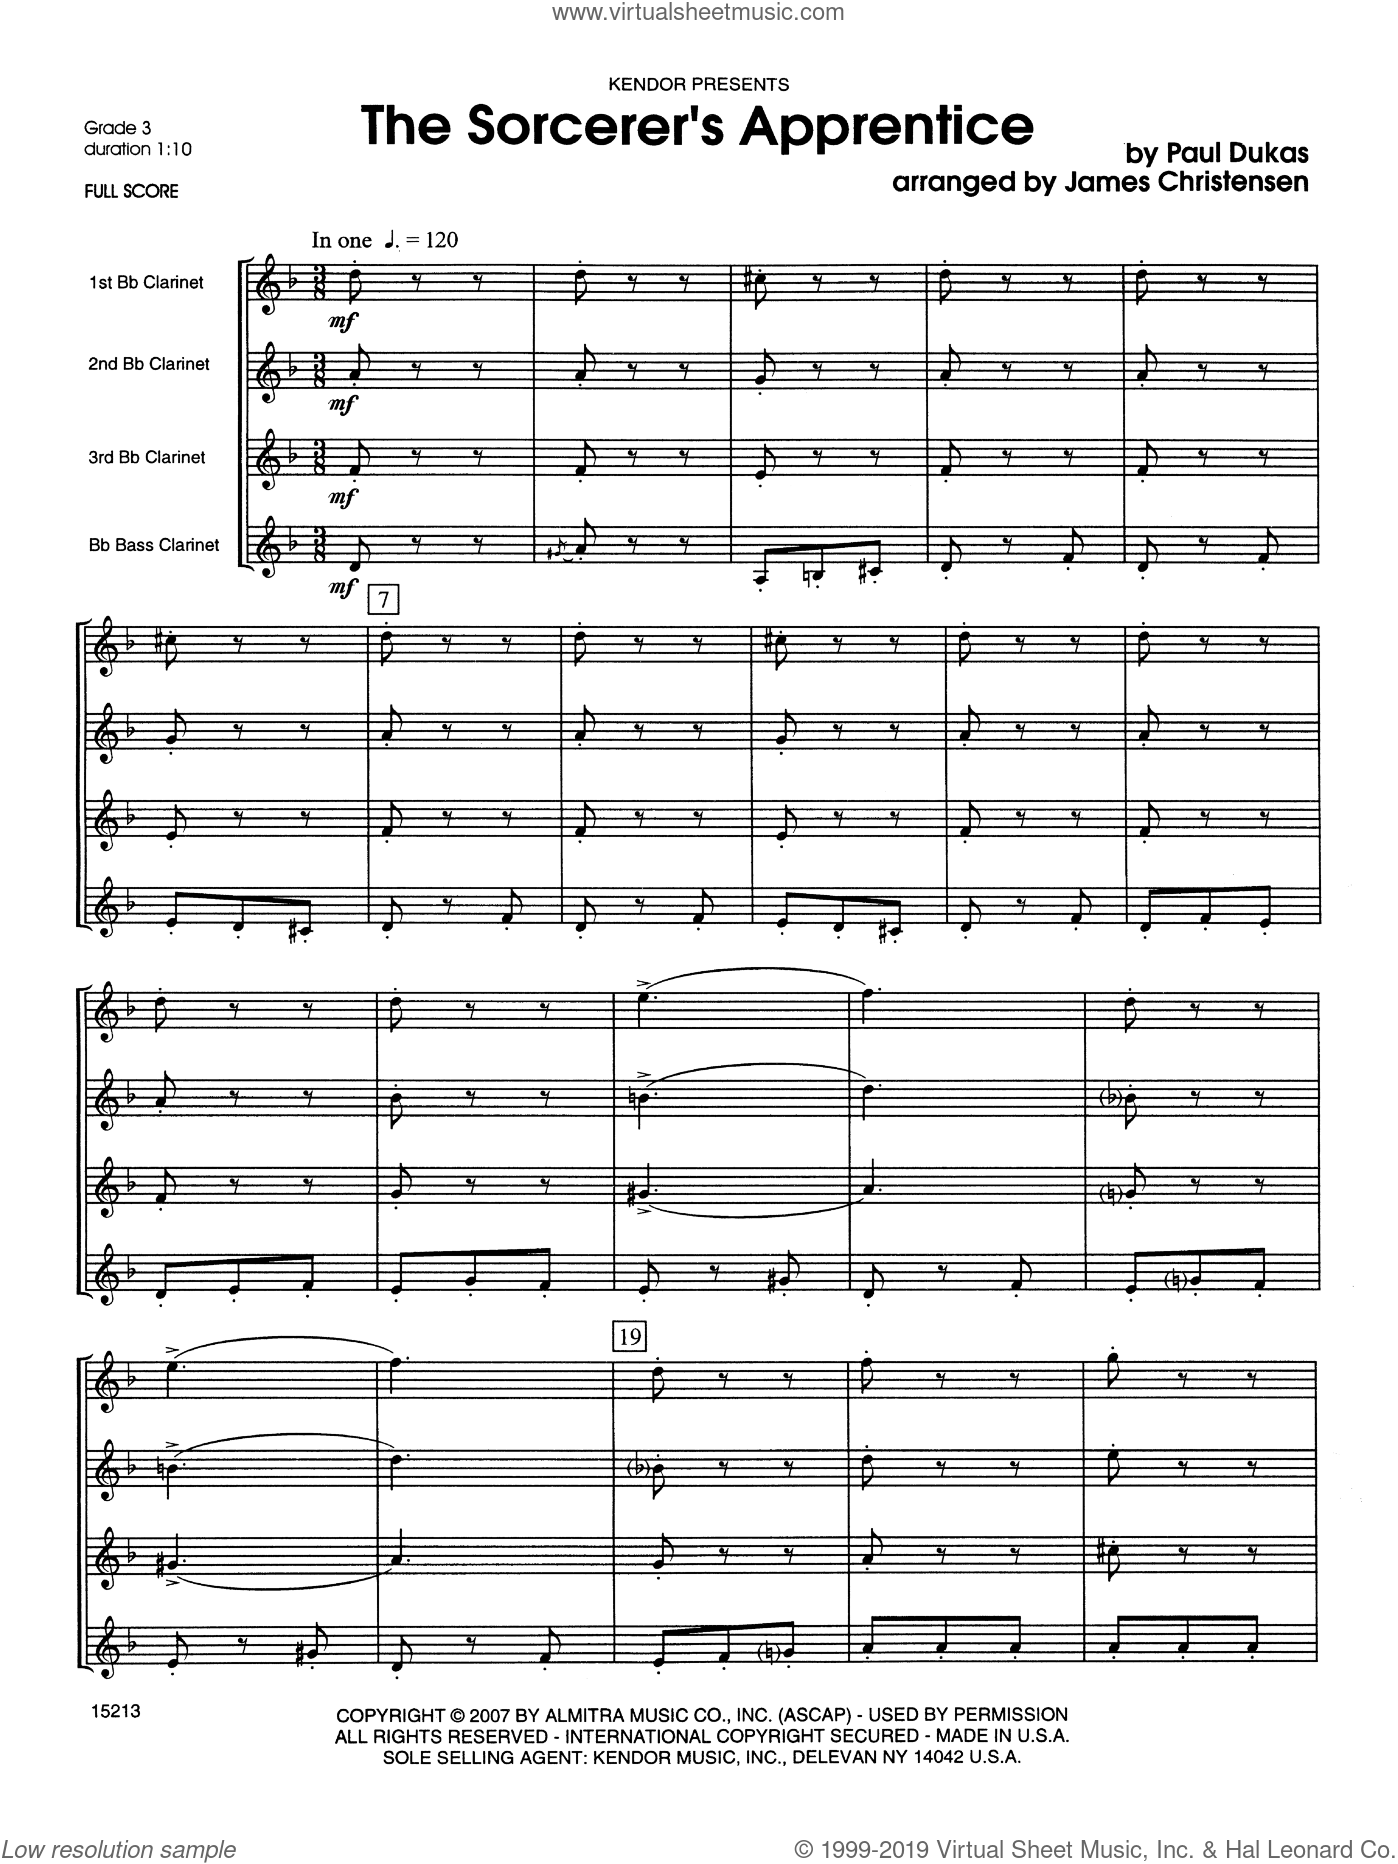 Sorcerer's Apprentice, The sheet music for clarinet quartet (full score) by Dukas